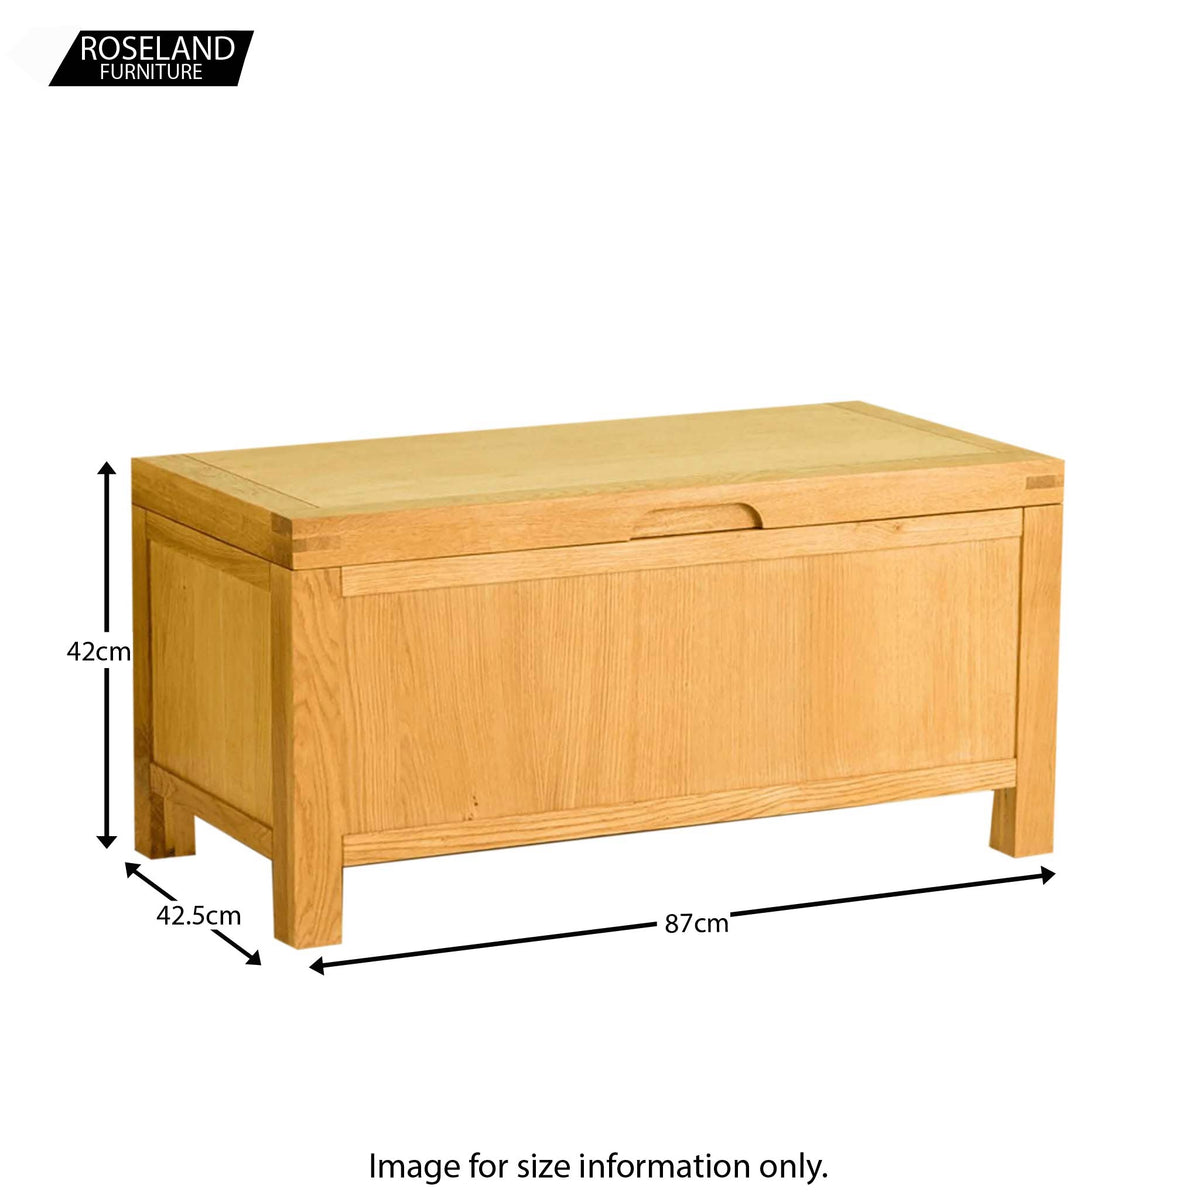 Abbey Waxed Oak Ottoman Blanket Box - Size guide